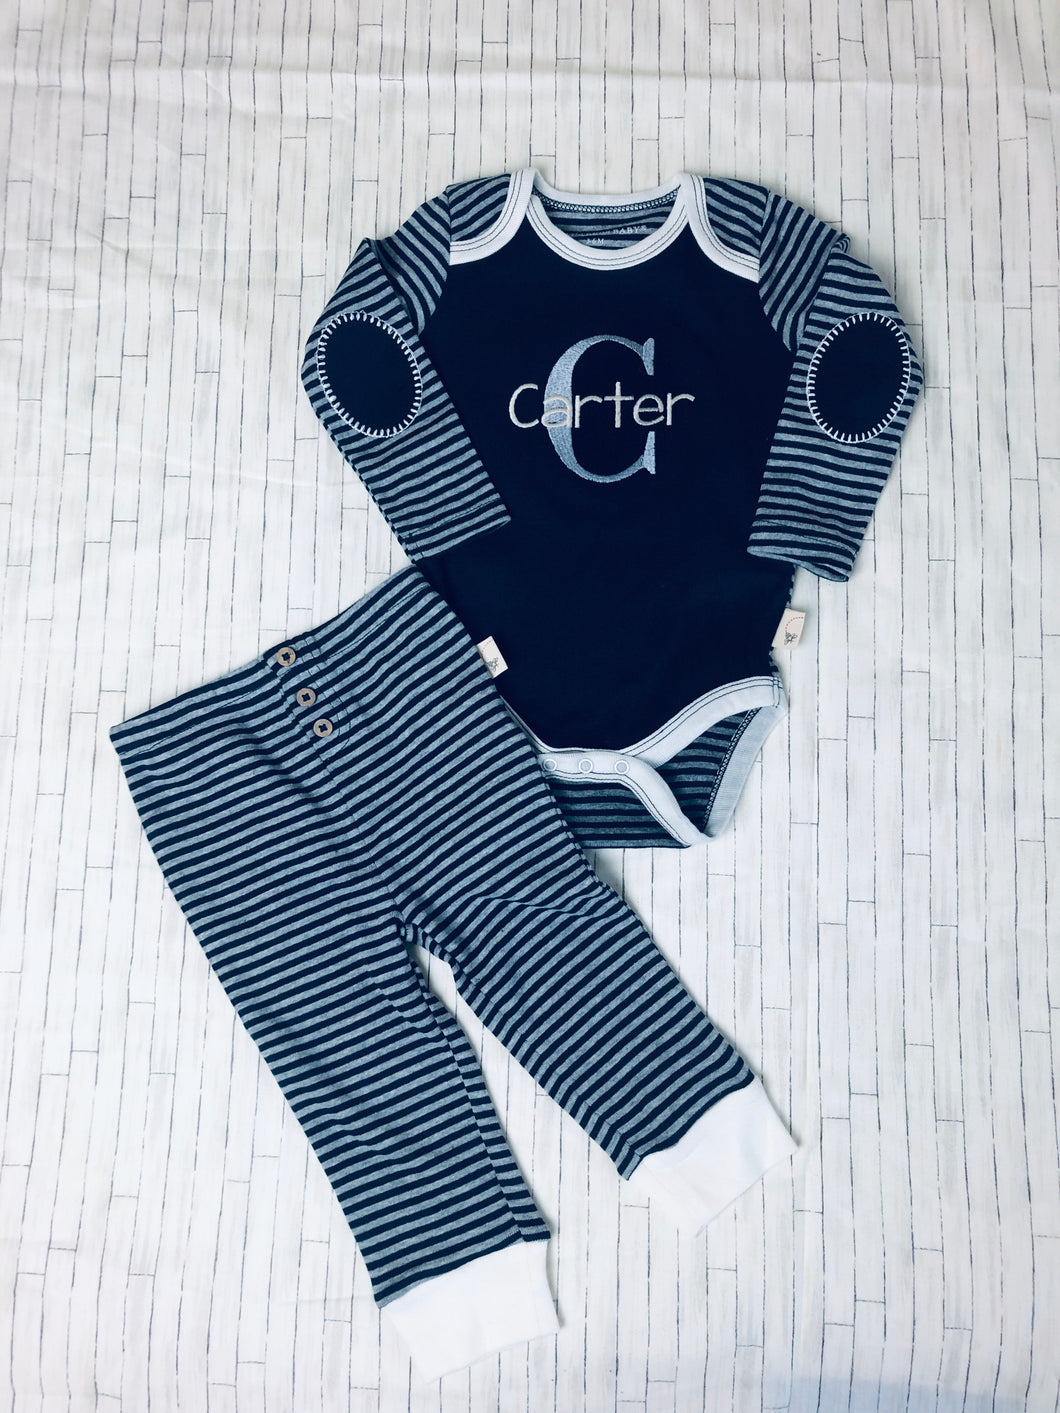 Baby Boy - Navy Striped 2 pc. Set from Bert's Bees Baby